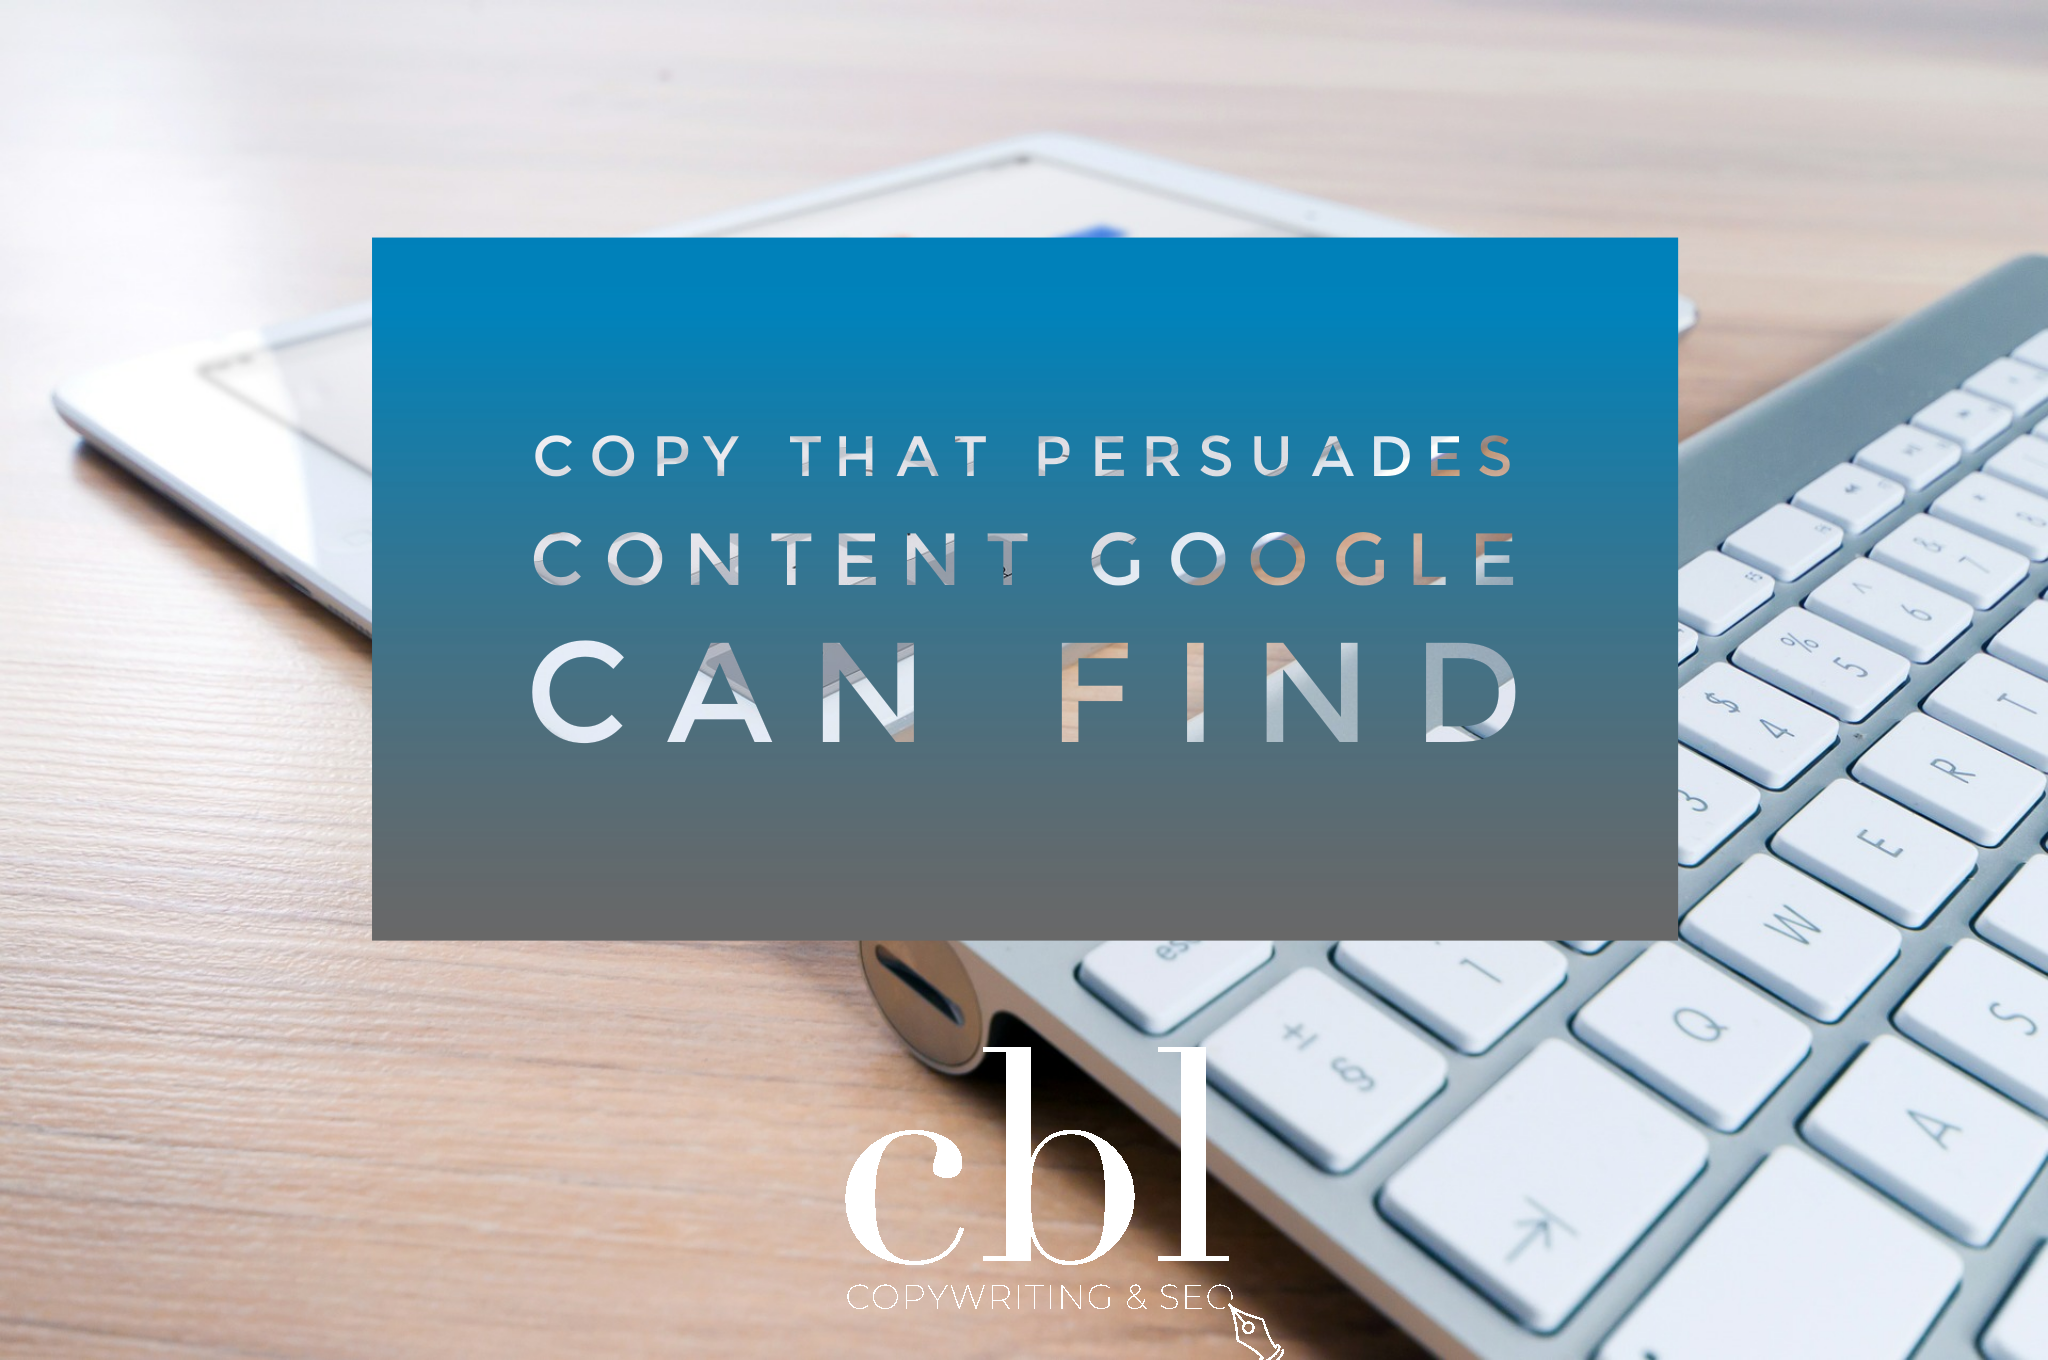 Copy that persuades, content Google can find